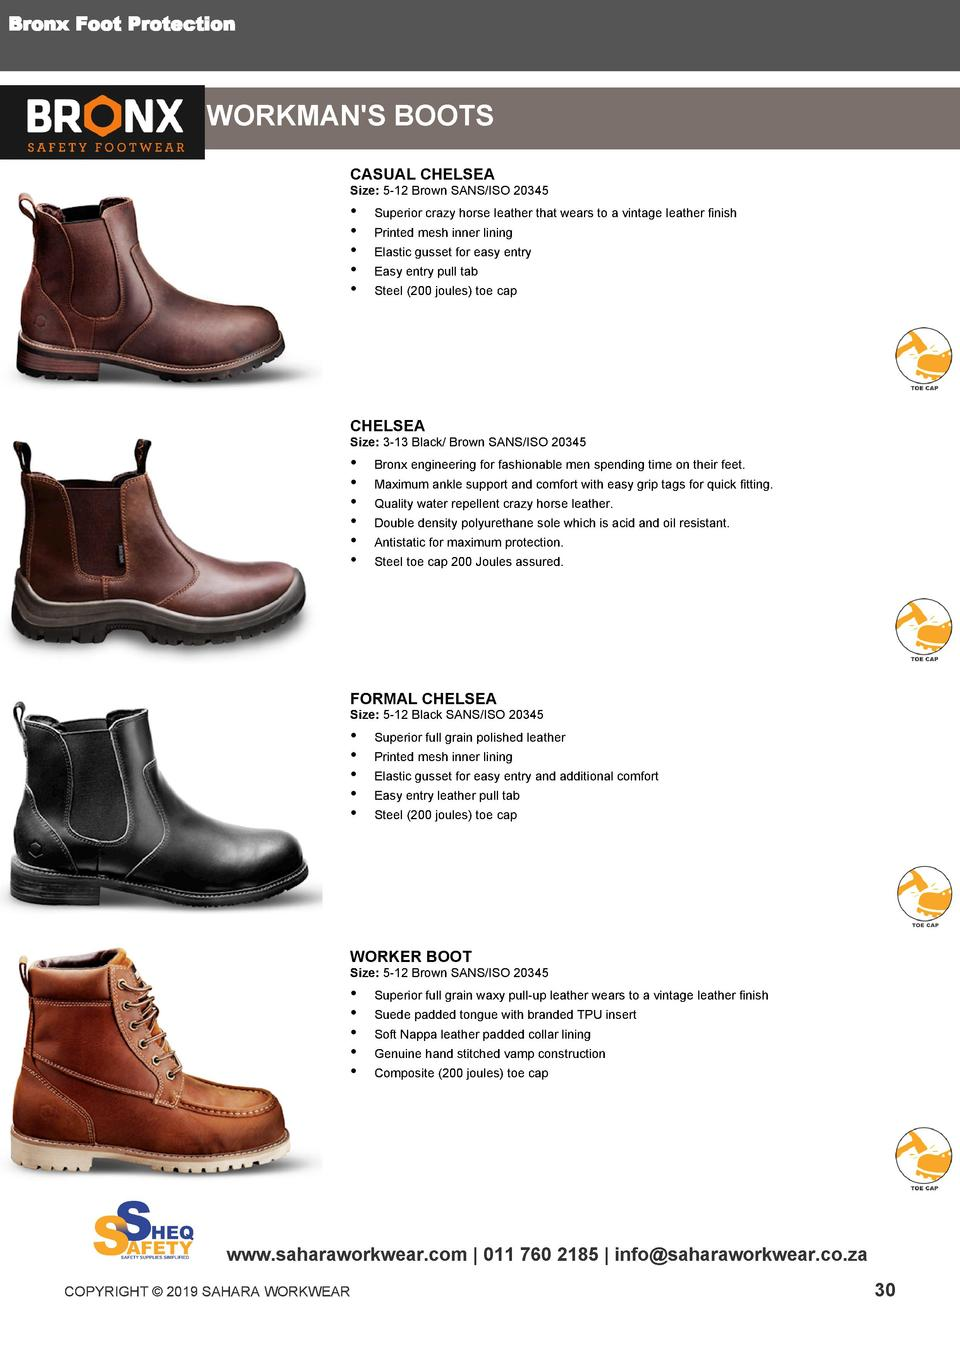 a1be7e3054 Bronx Foot Protection WORKMAN S BOOTS CASUAL CHELSEA Size 5-12 Brown SANS  ISO 20345